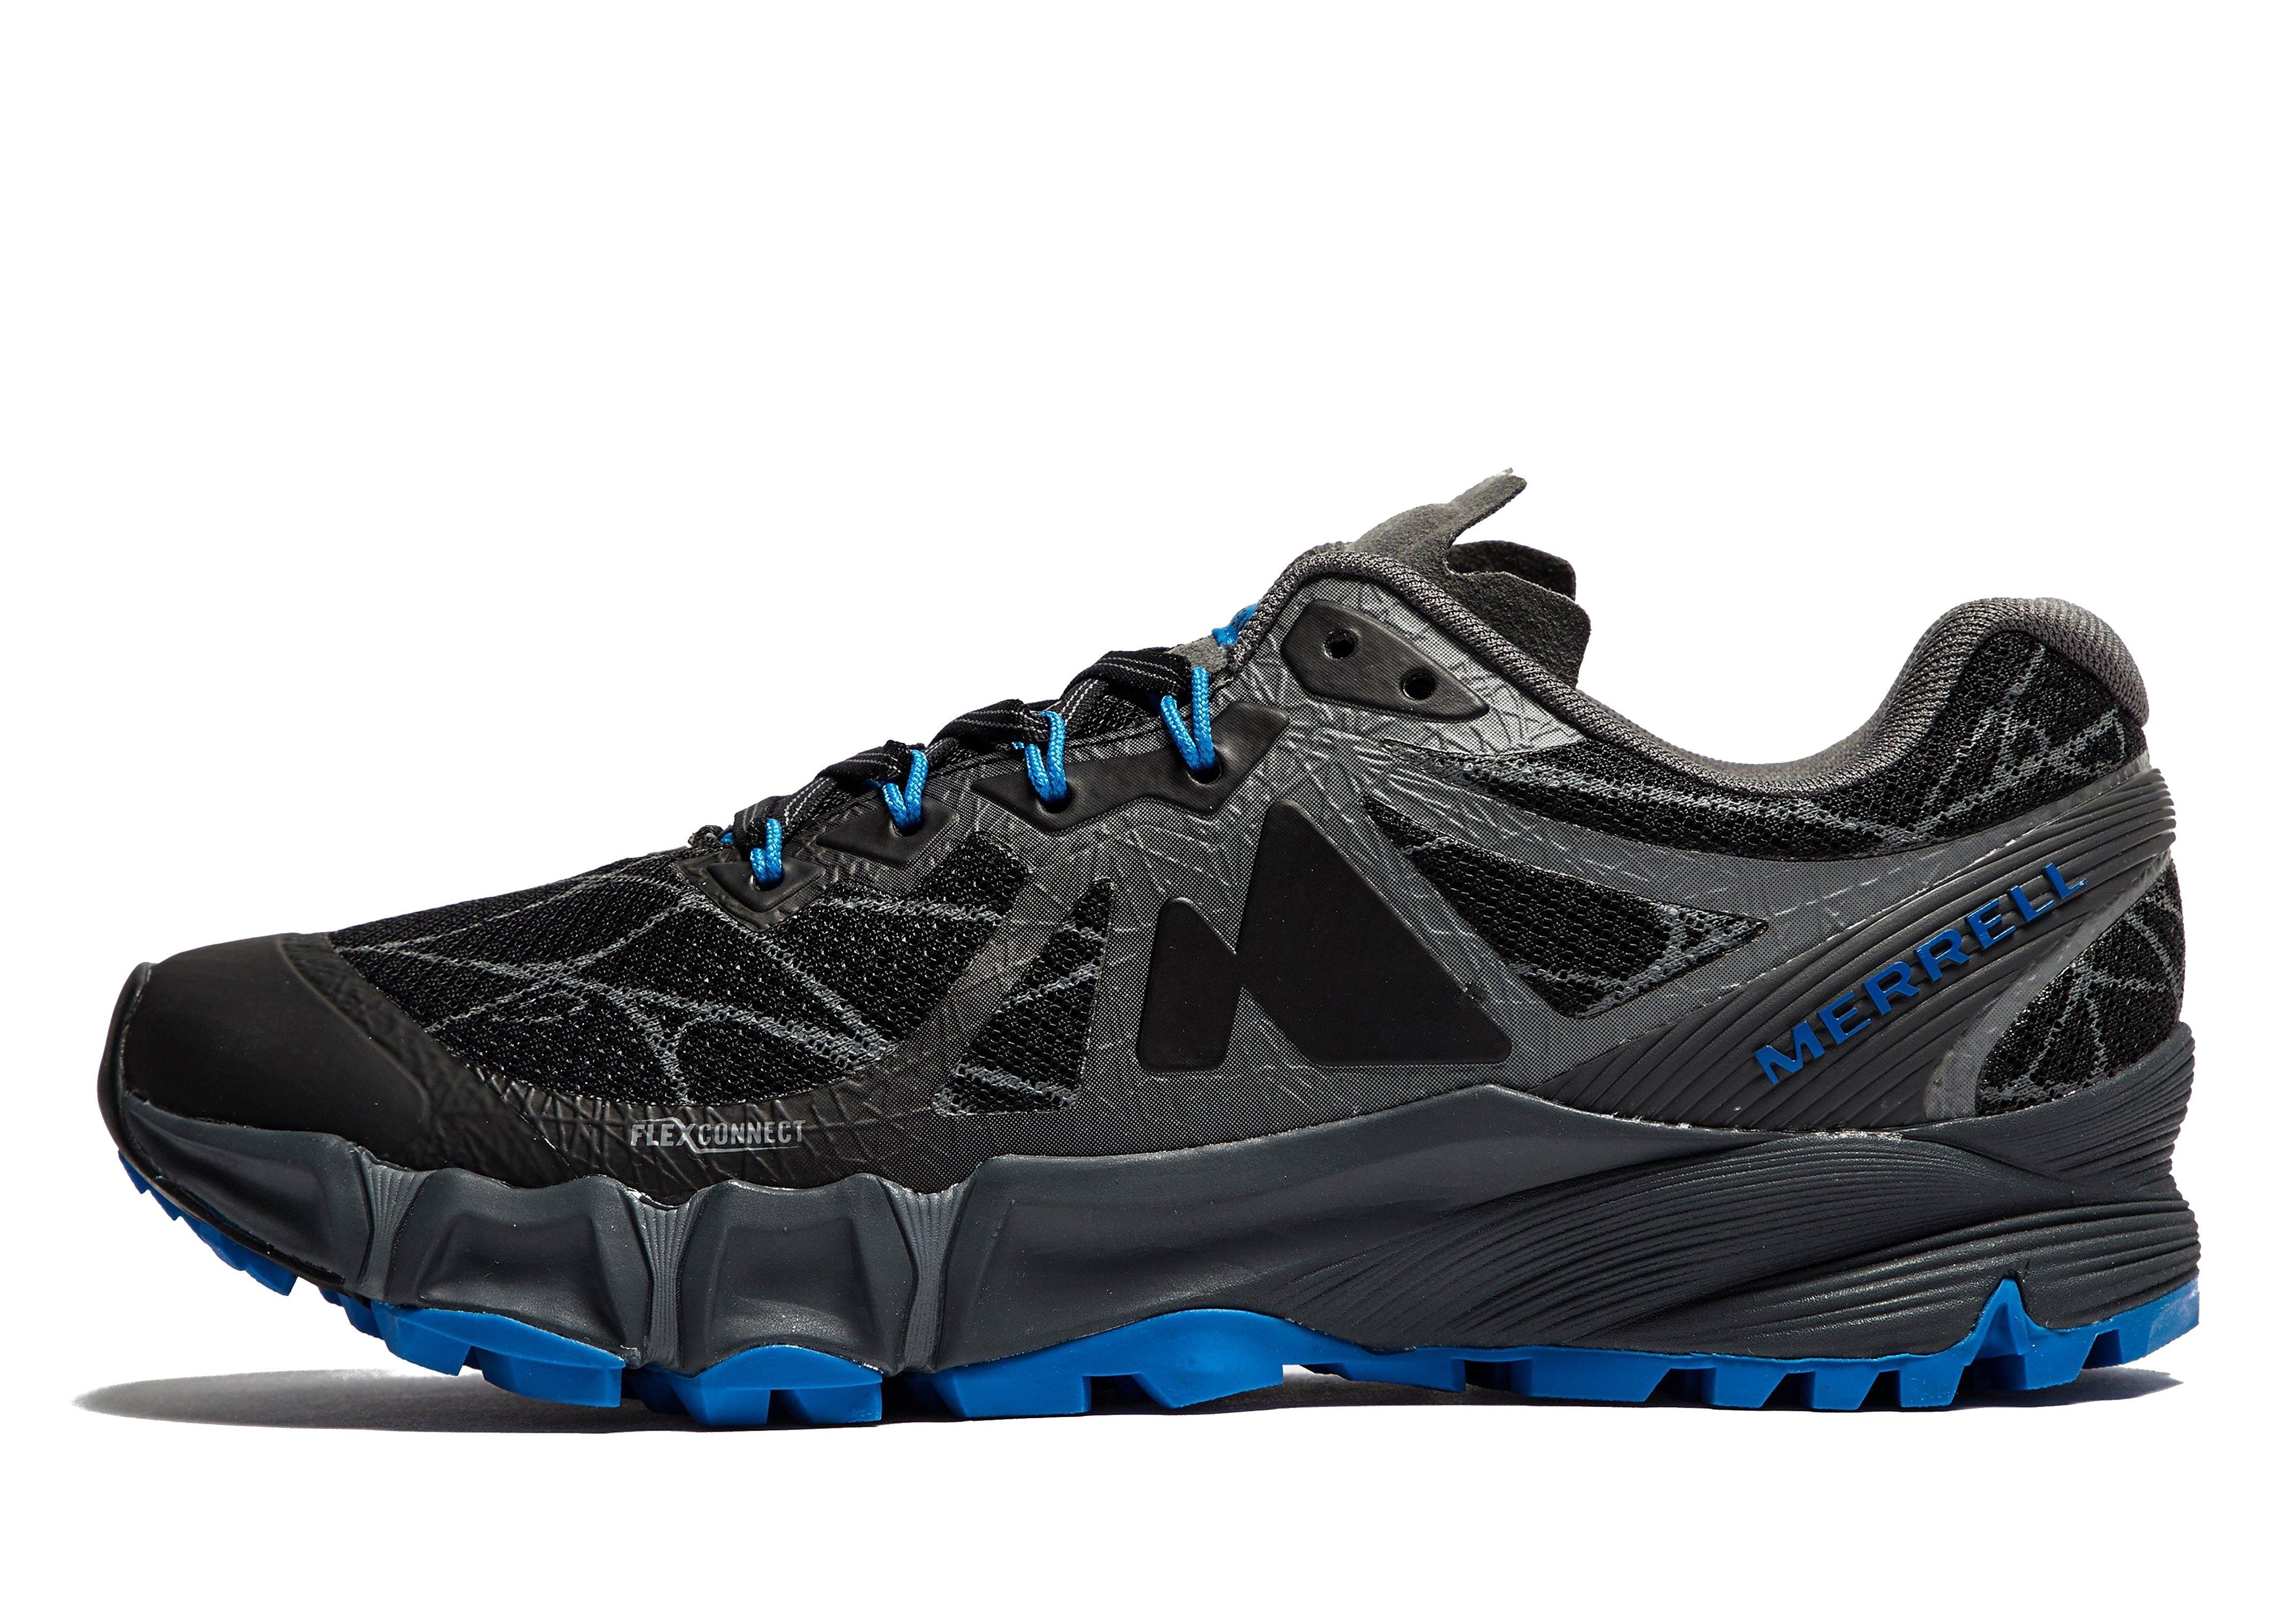 Merrell Agility Peak Flex Men's Trail Running Shoes